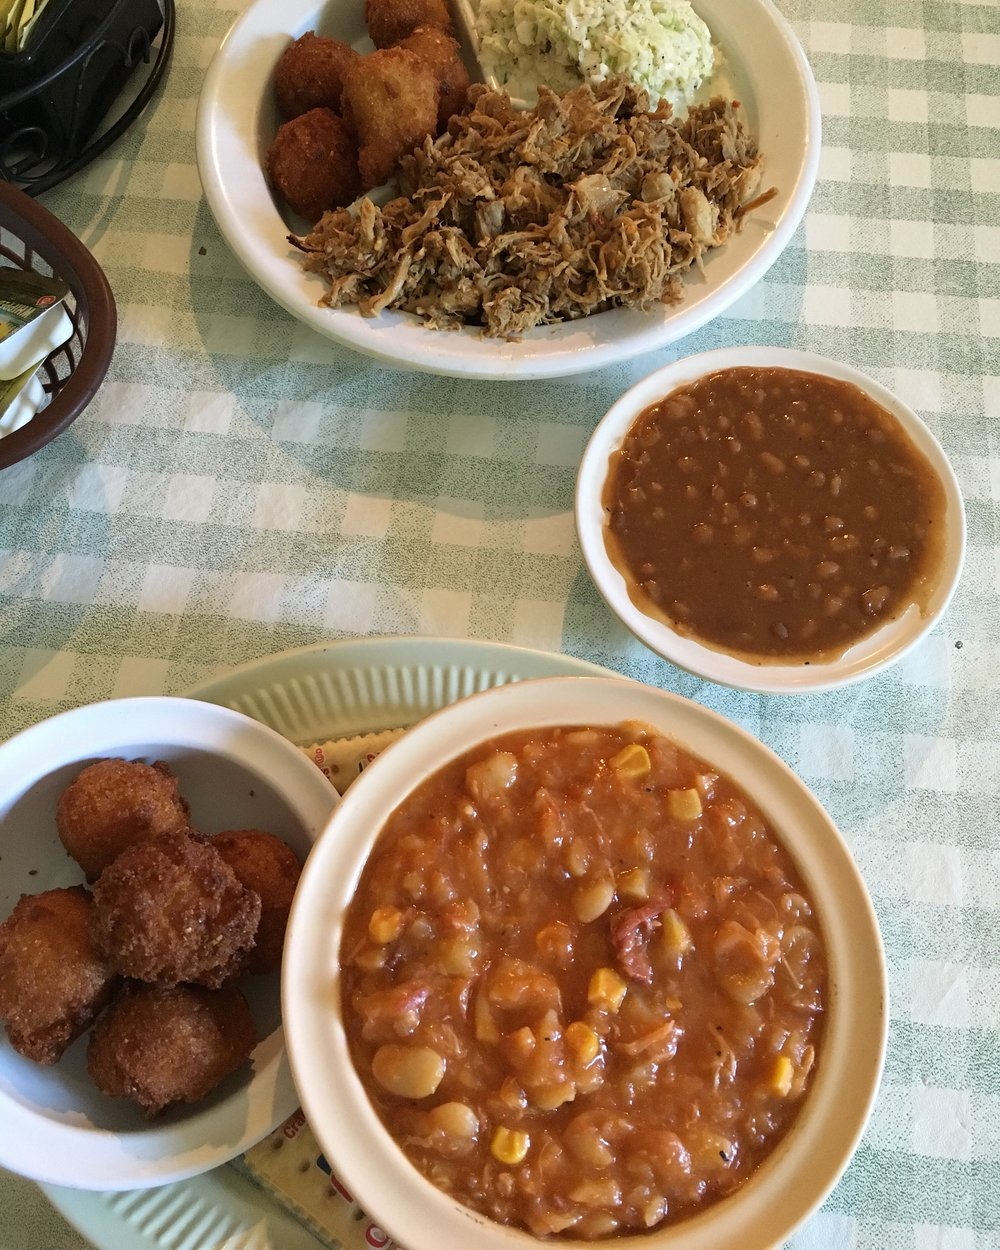 hush puppies, brunswick stew, pulled pork, baked beans...